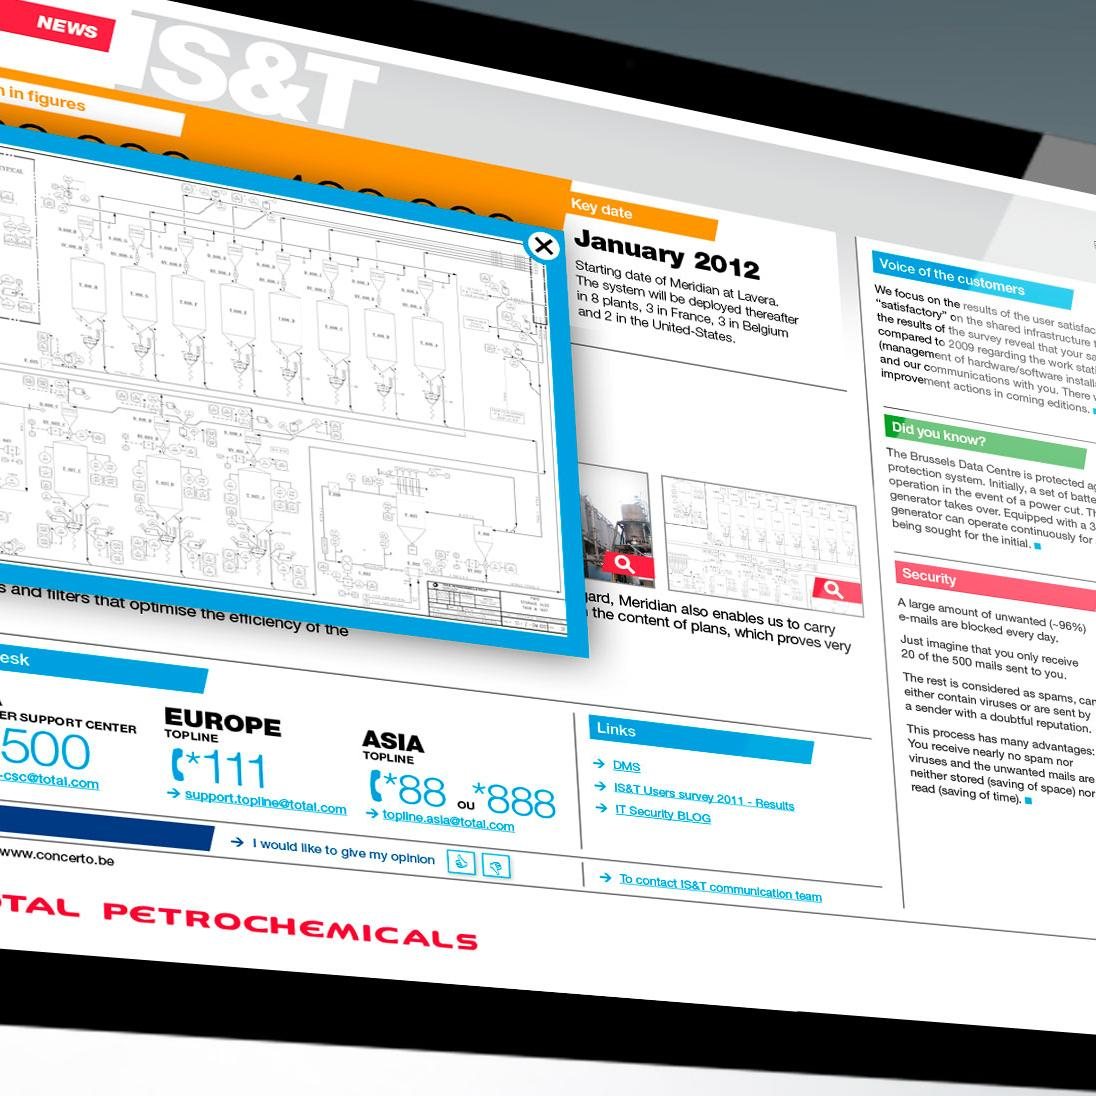 TOTAL Petrochemicals Enewsletter